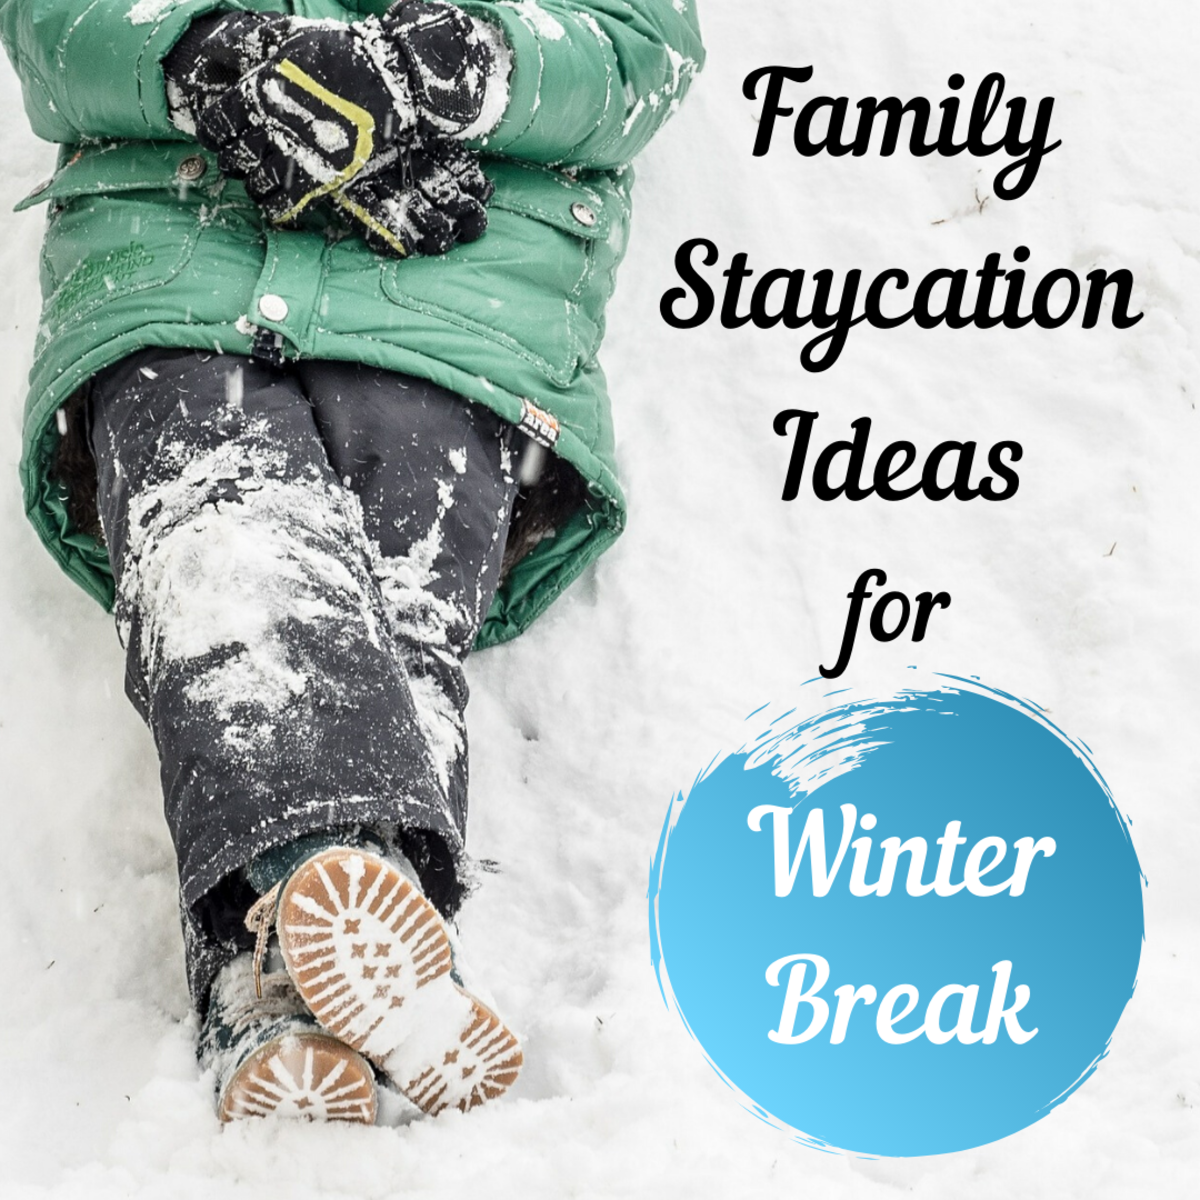 Things to Do Over Winter Break: 25 Family Staycation Ideas